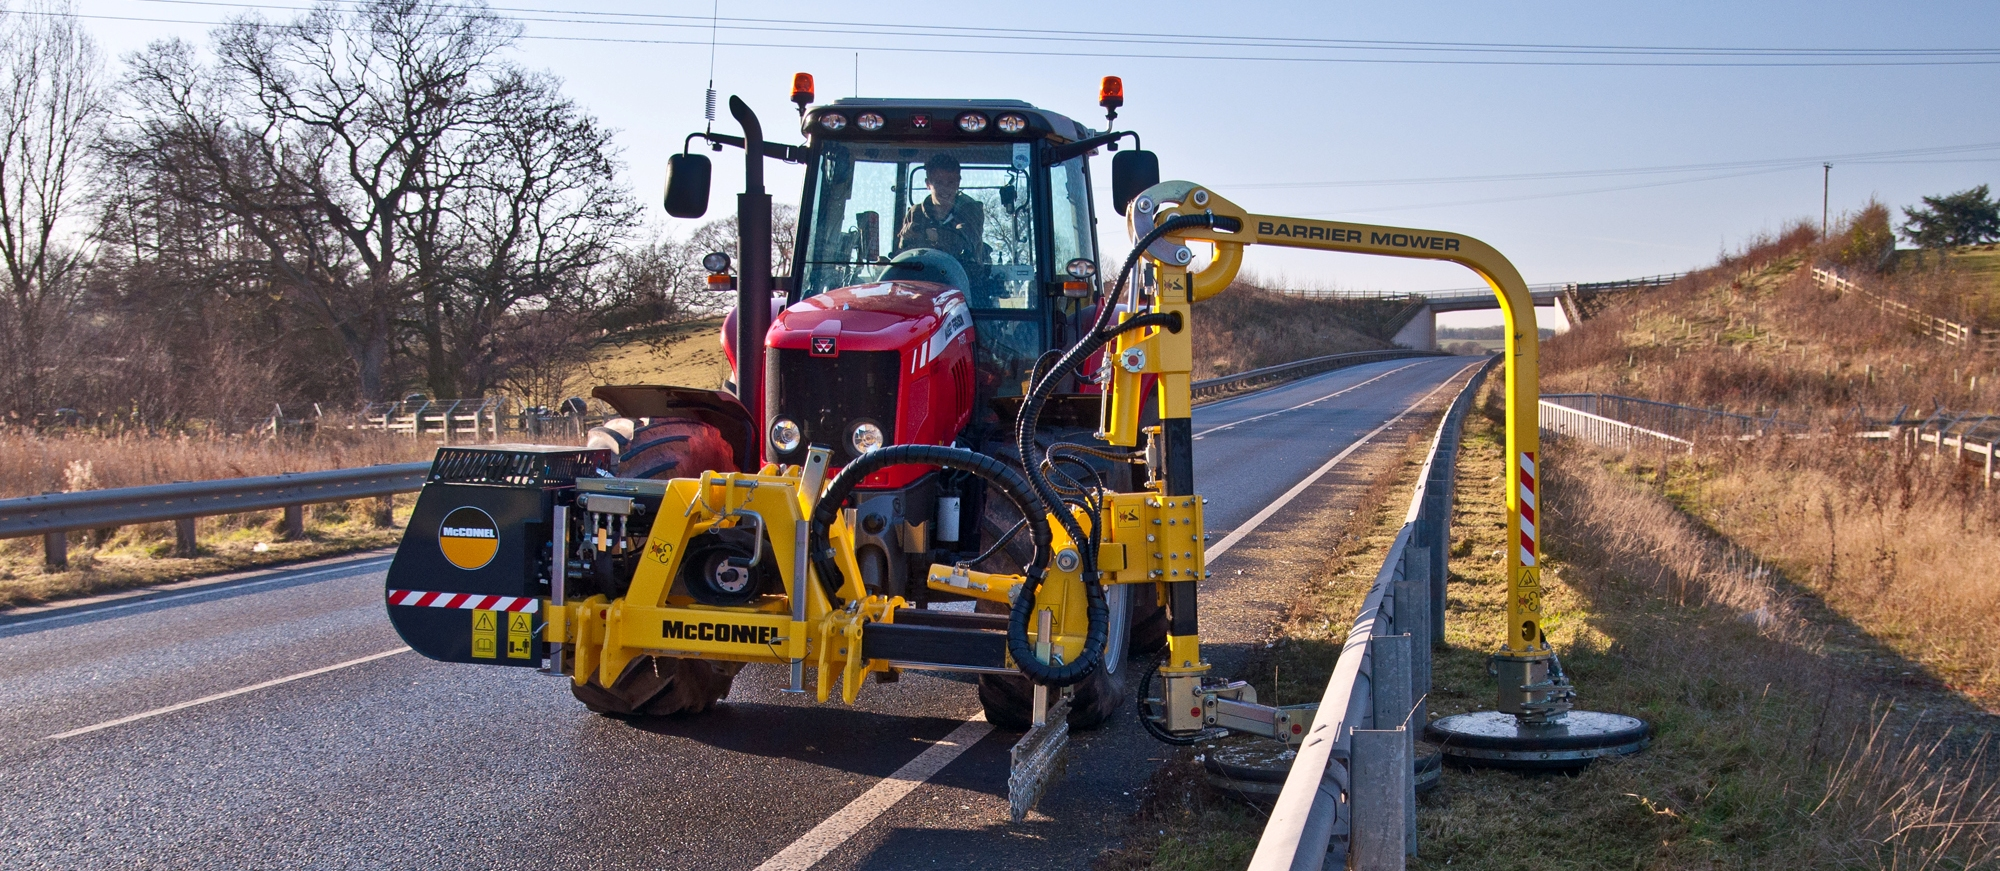 New McConnel Barrier Mower Now Available